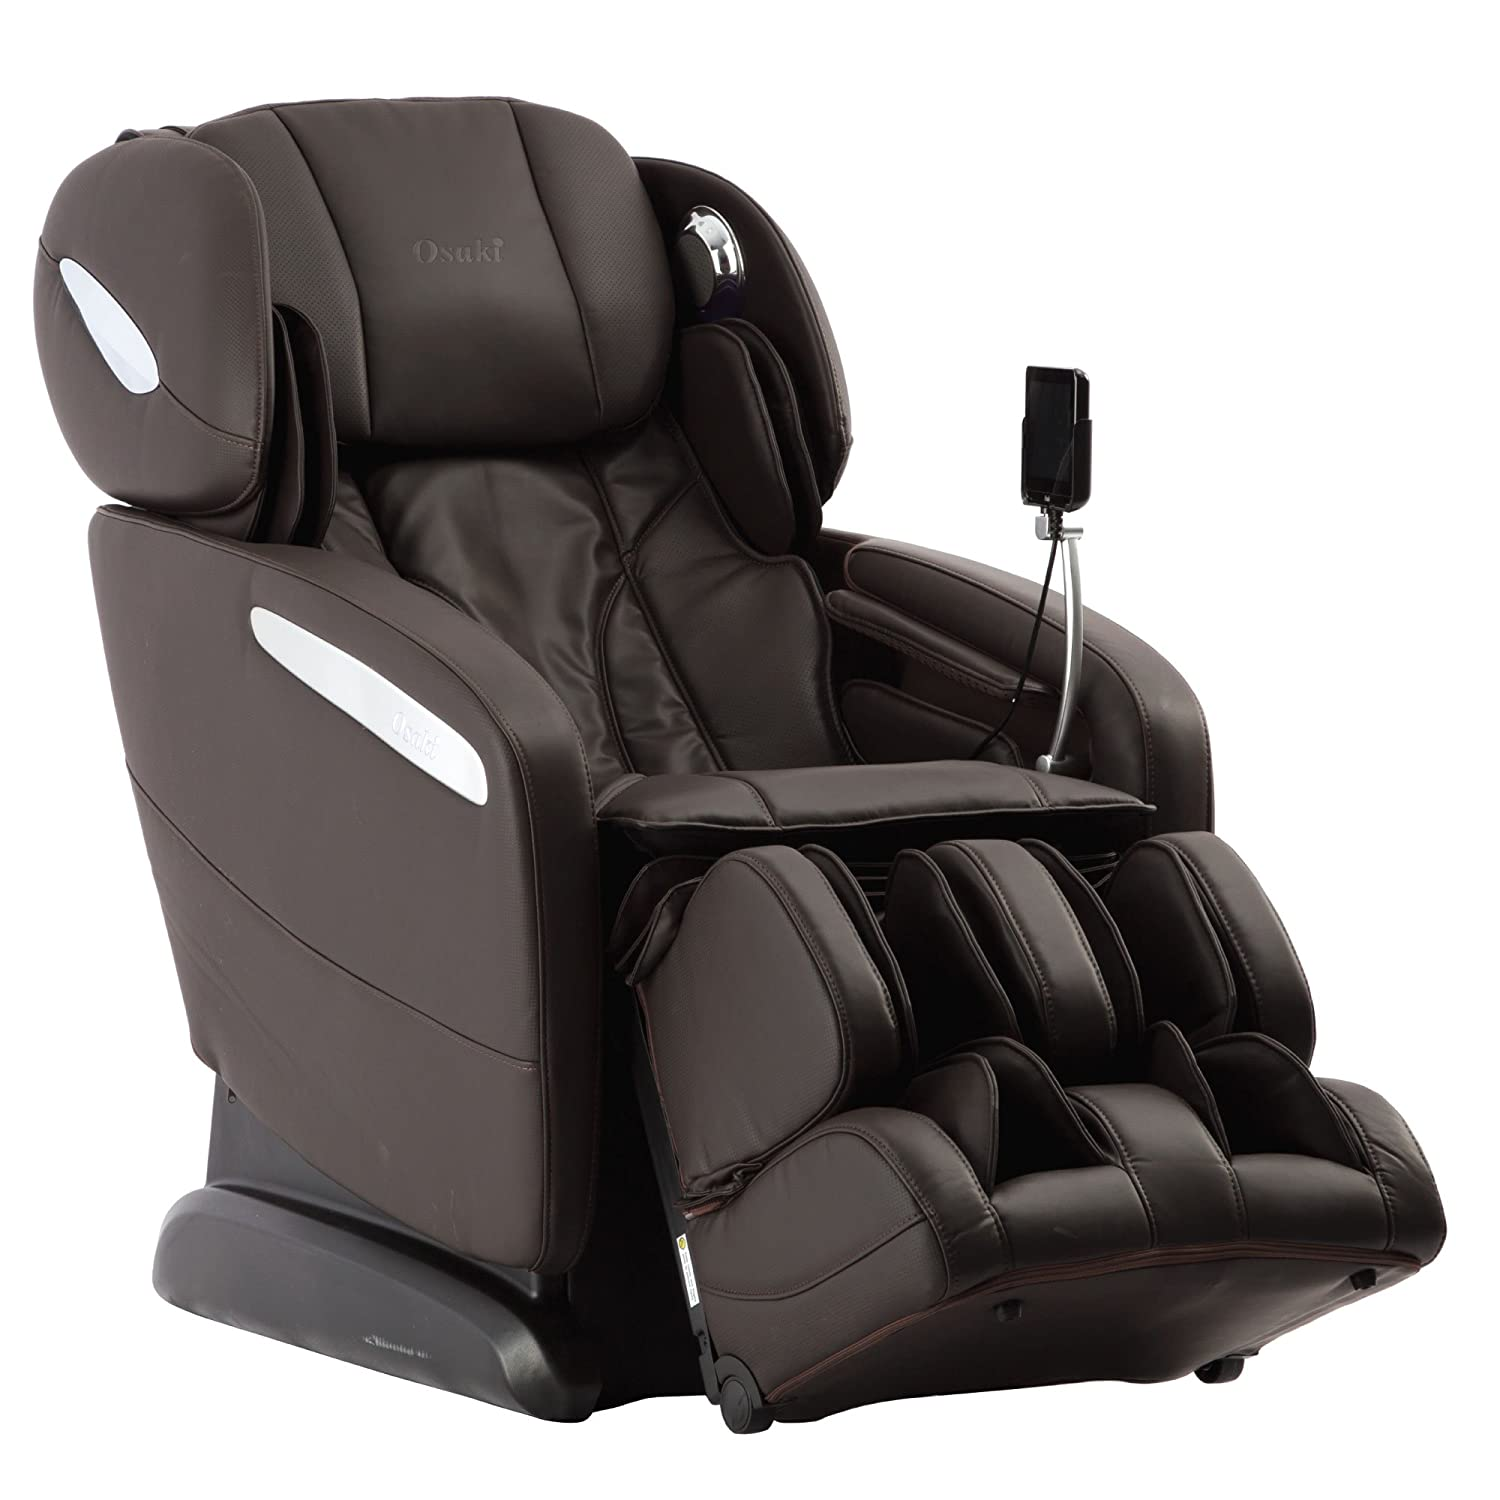 Amazon OSAKI OS PRO MAXIM Zero Gravity Massage Chair Brown